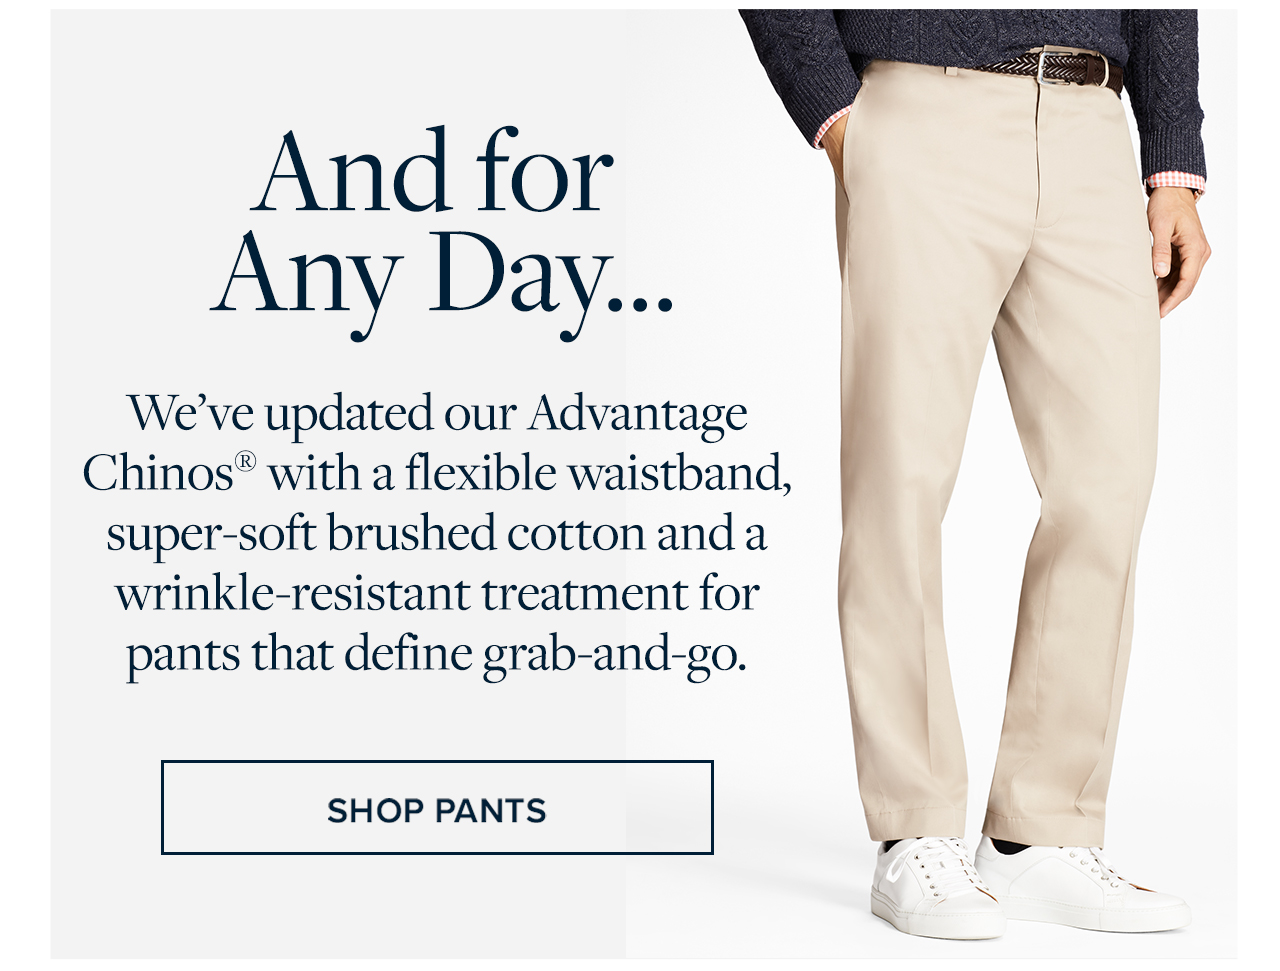 And for Any Day... We've updated our Advantage Chinos with a flexible waistband, super-soft brushed cotton and a wrinkle-resistant treatment for pants that define grab-and-go. Shop Pants